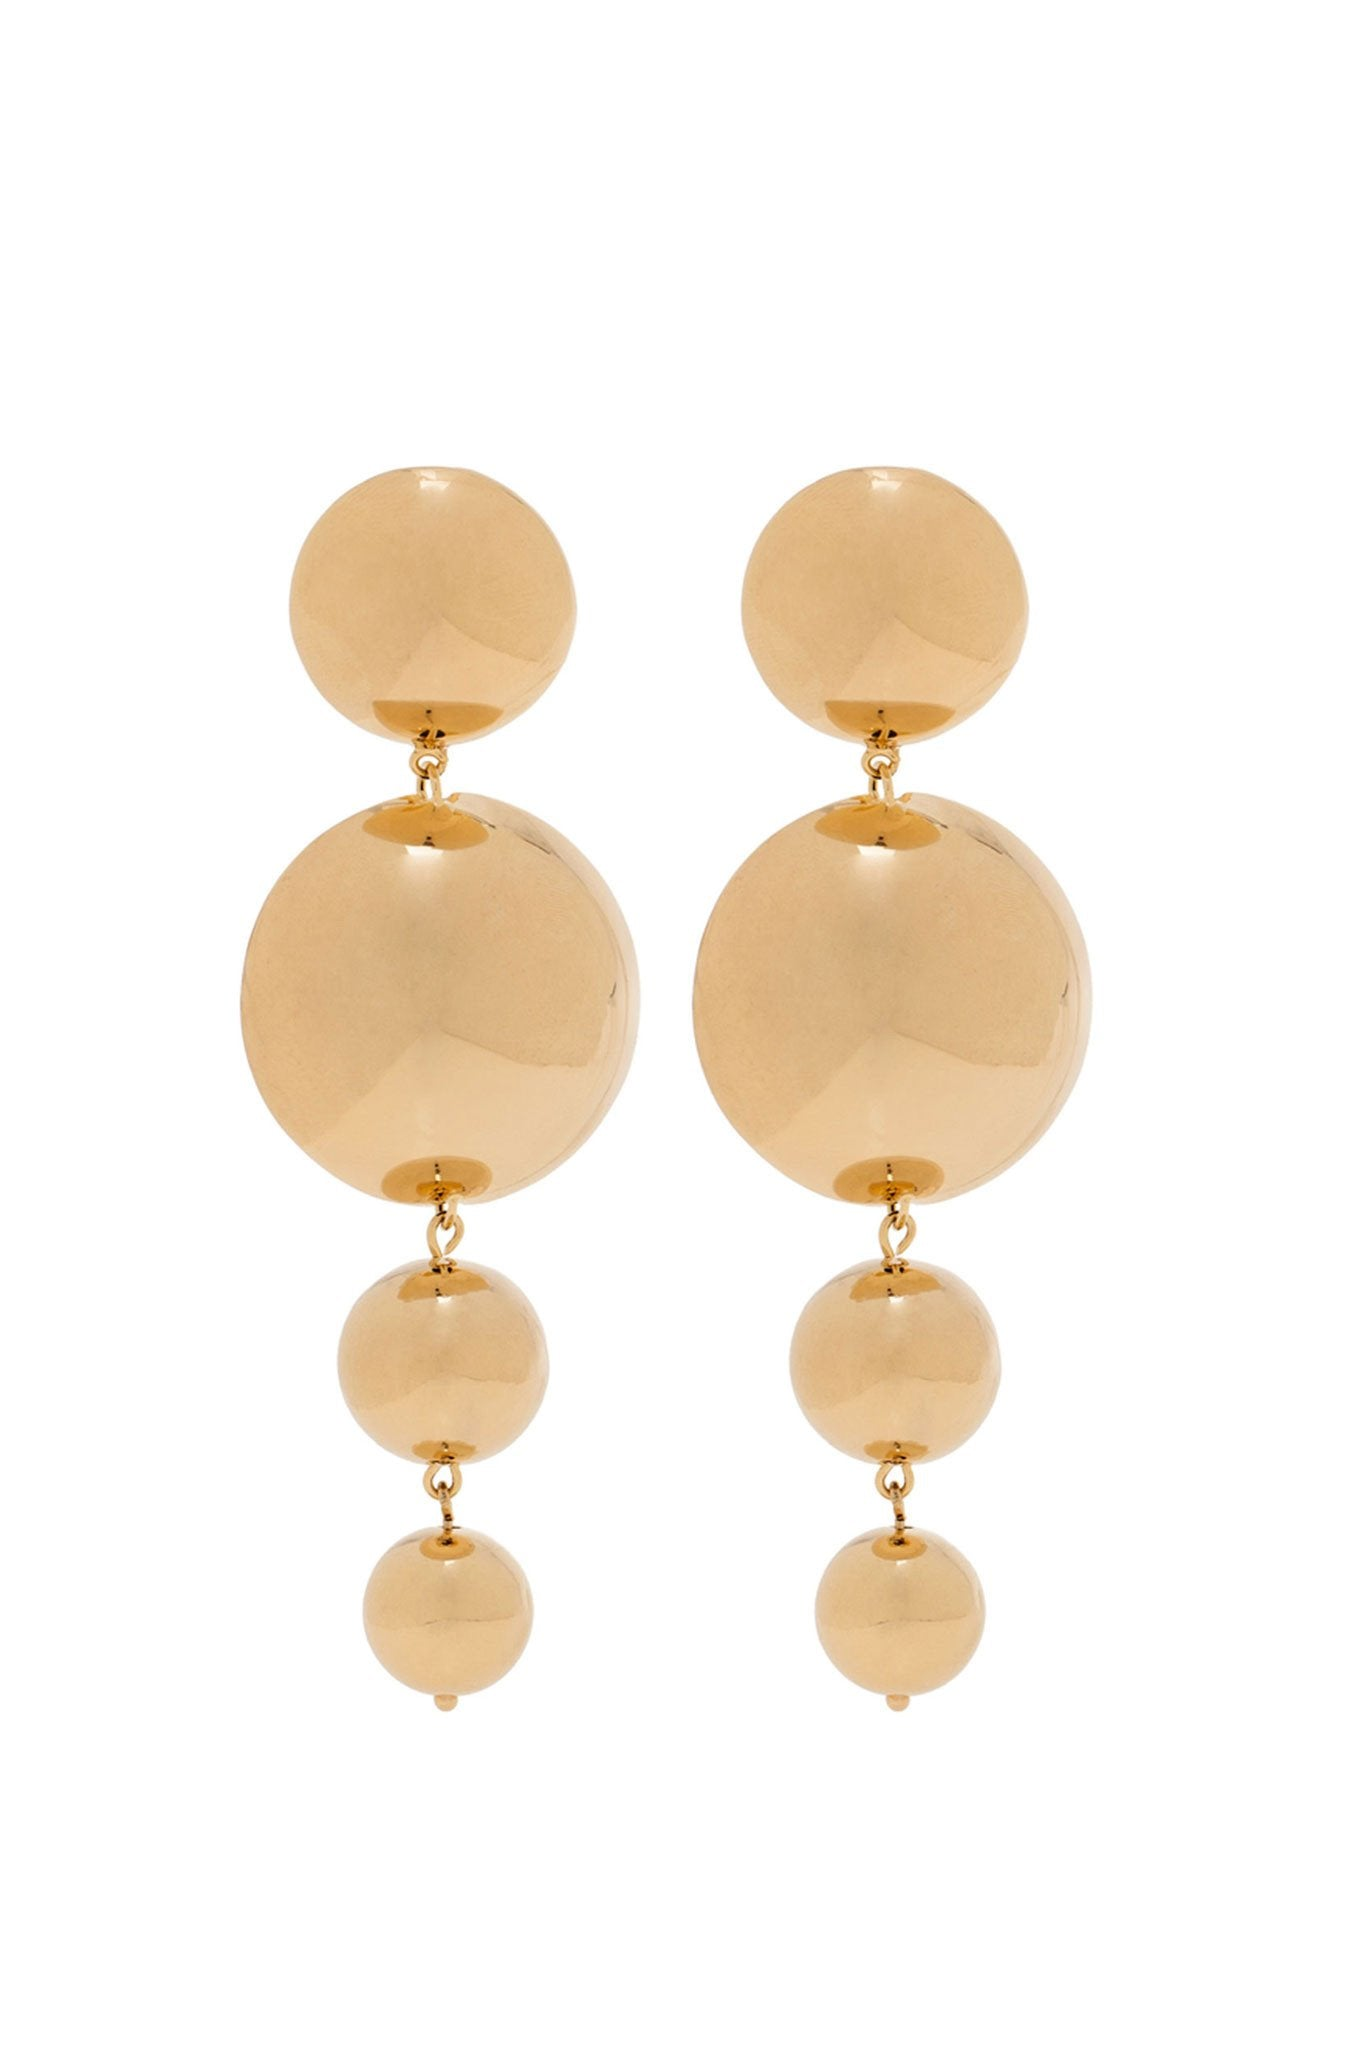 GOLDEN FOUR BALLS EARRINGS